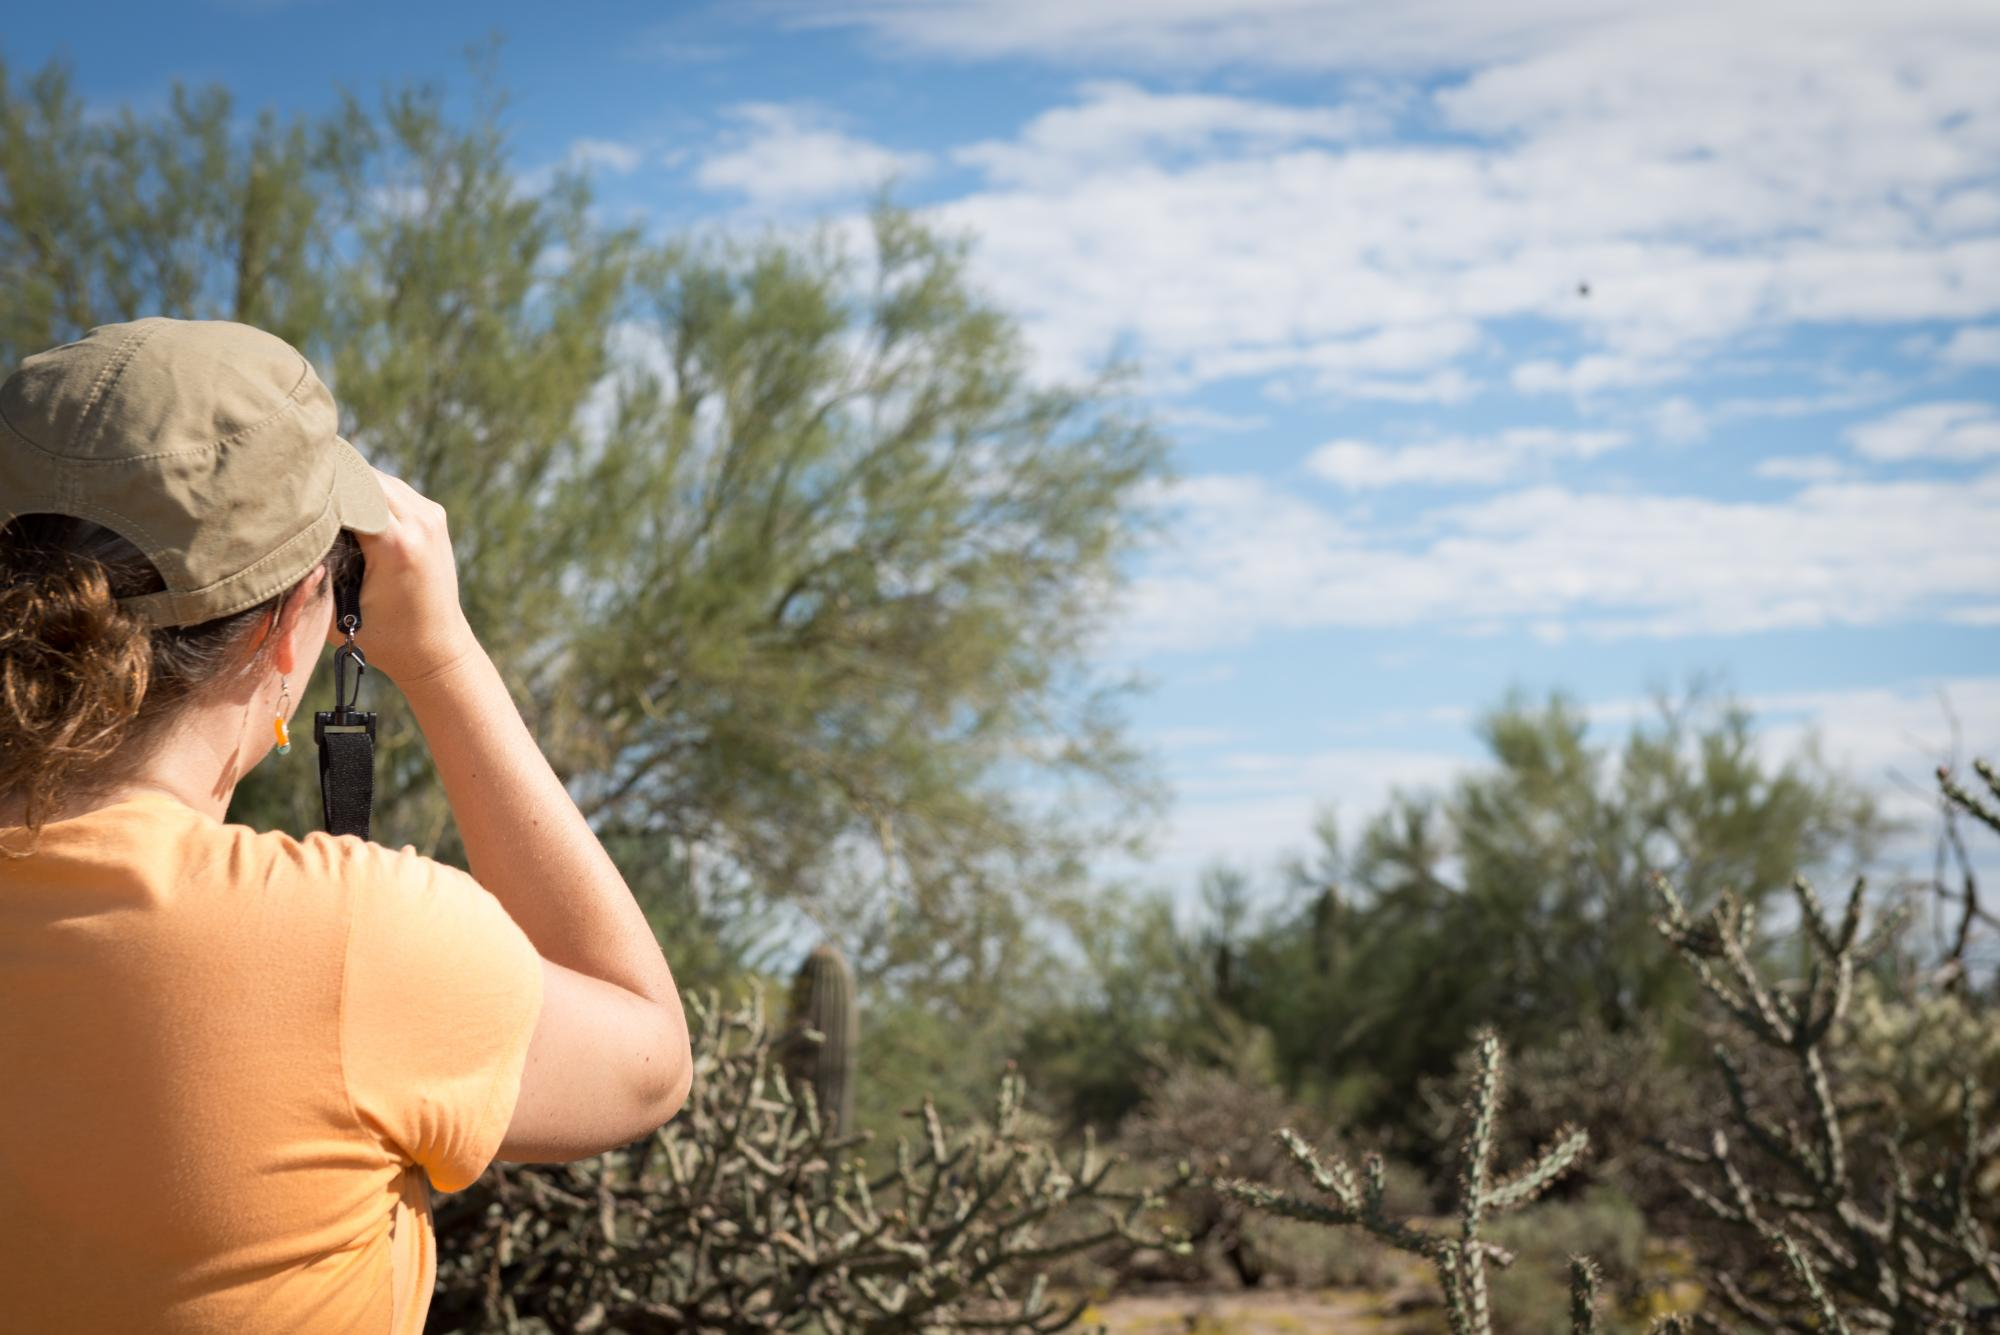 Observers track saguaros, palo verde trees, cactus wrens and hummingbirds at the Mason Audubon Center in Tucson.